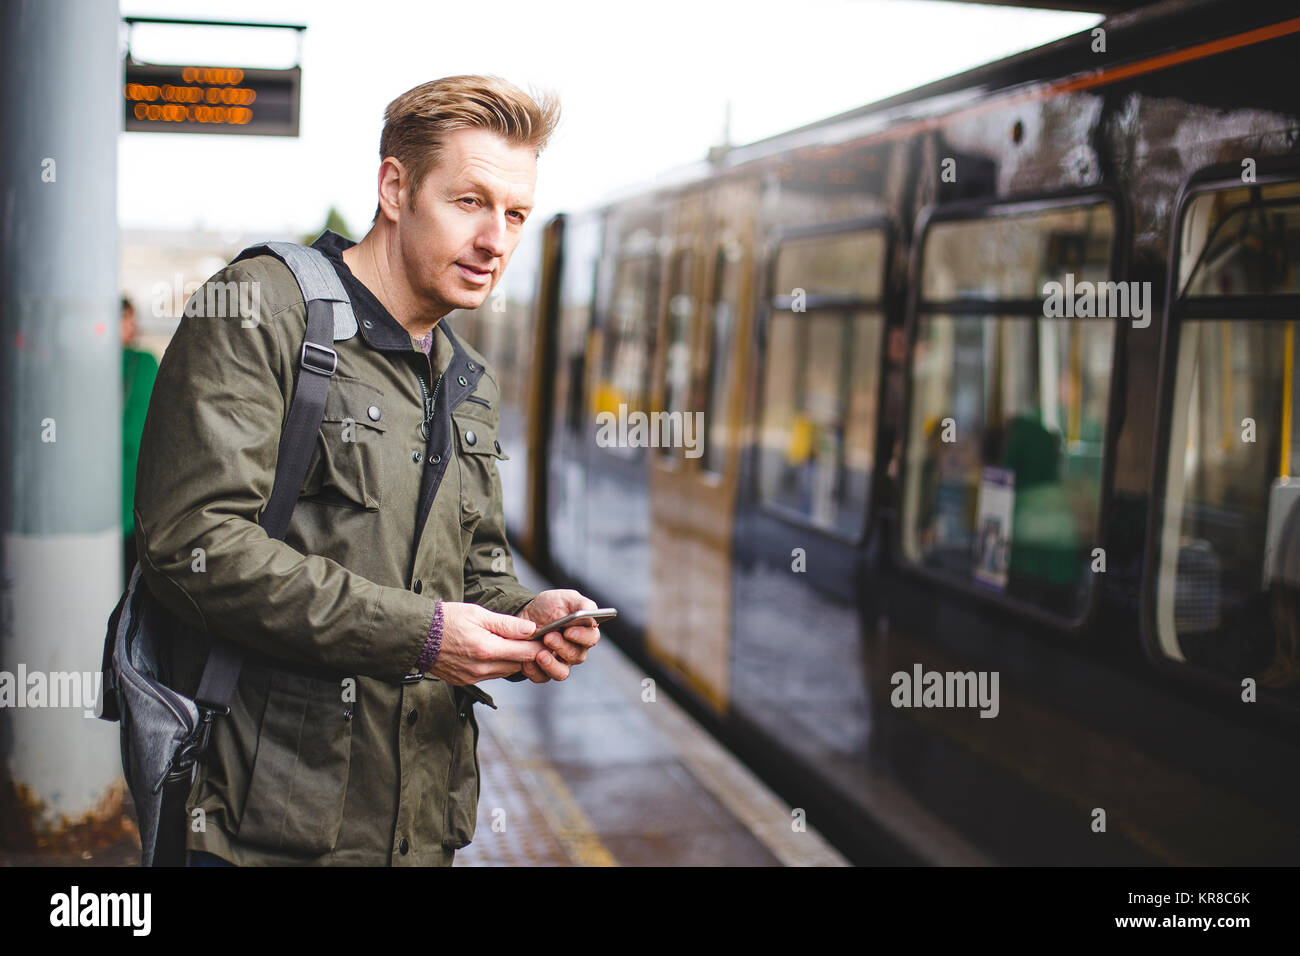 Catching the Train - Stock Image